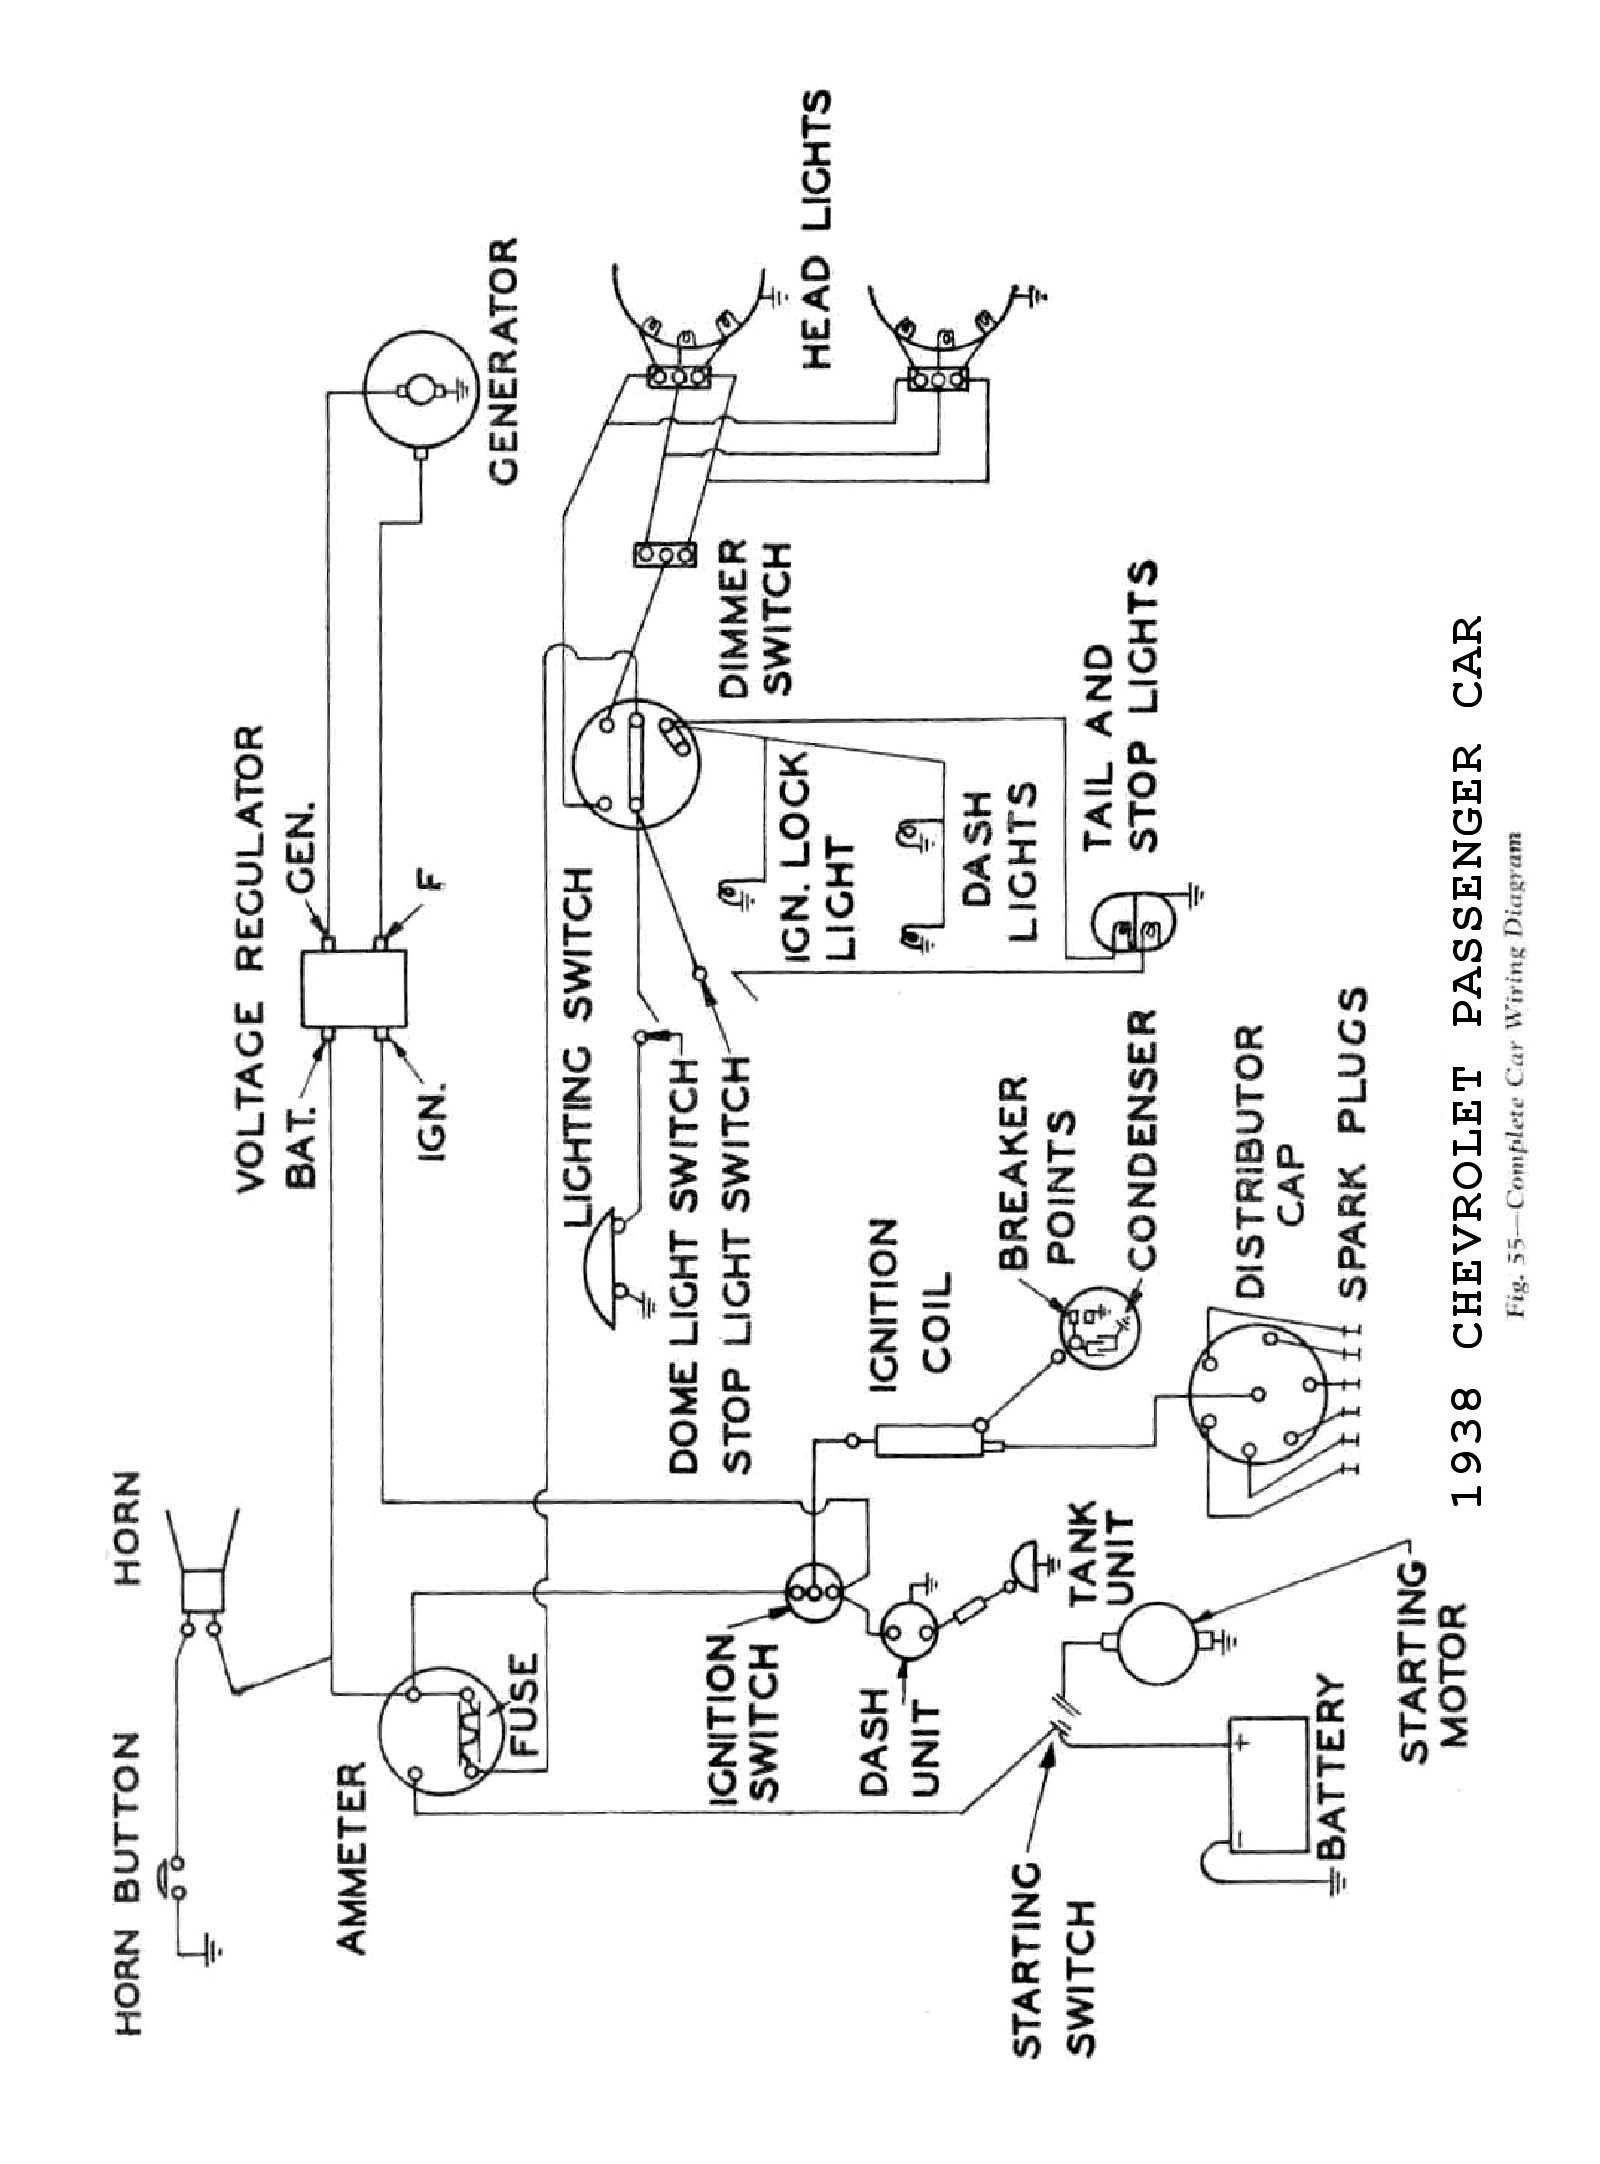 hight resolution of ignition circuit diagram for the 1948 54 ford 6 cylinder wiring jet boat ignition wiring diagram